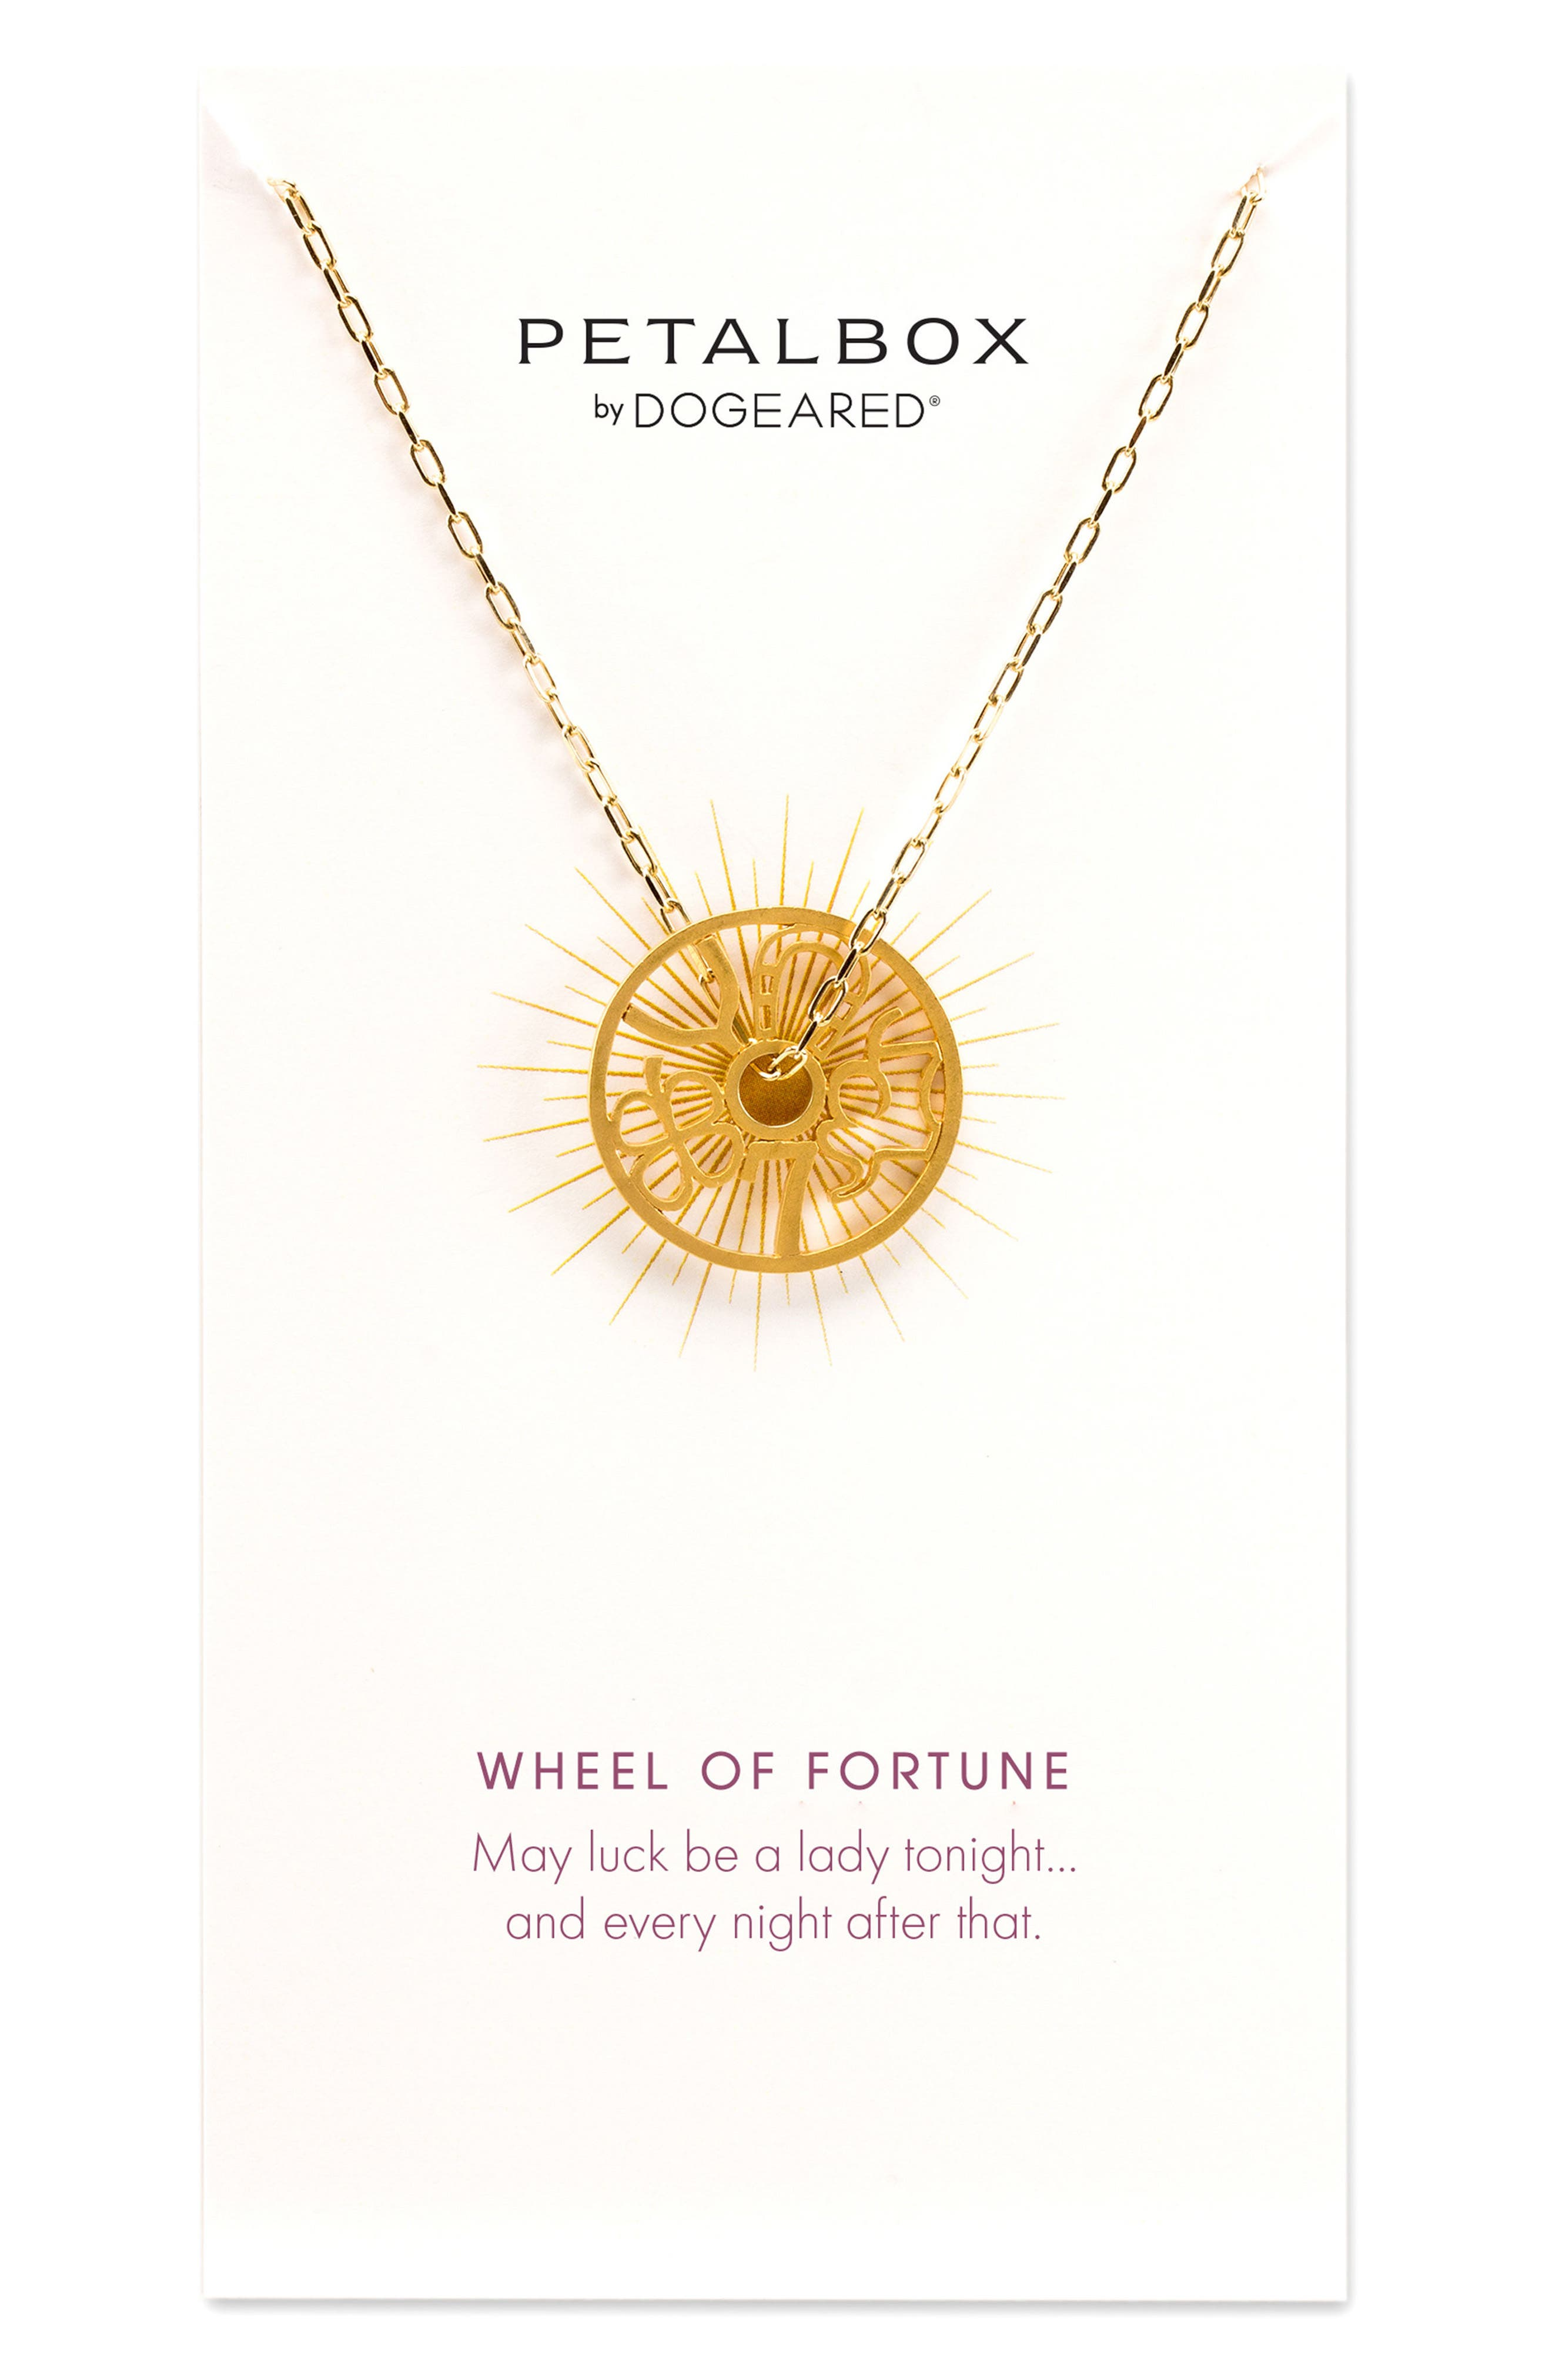 Alternate Image 1 Selected - Dogeared Petalbox Wheel of Fortune Pendant Necklace (Nordstrom Exclusive)